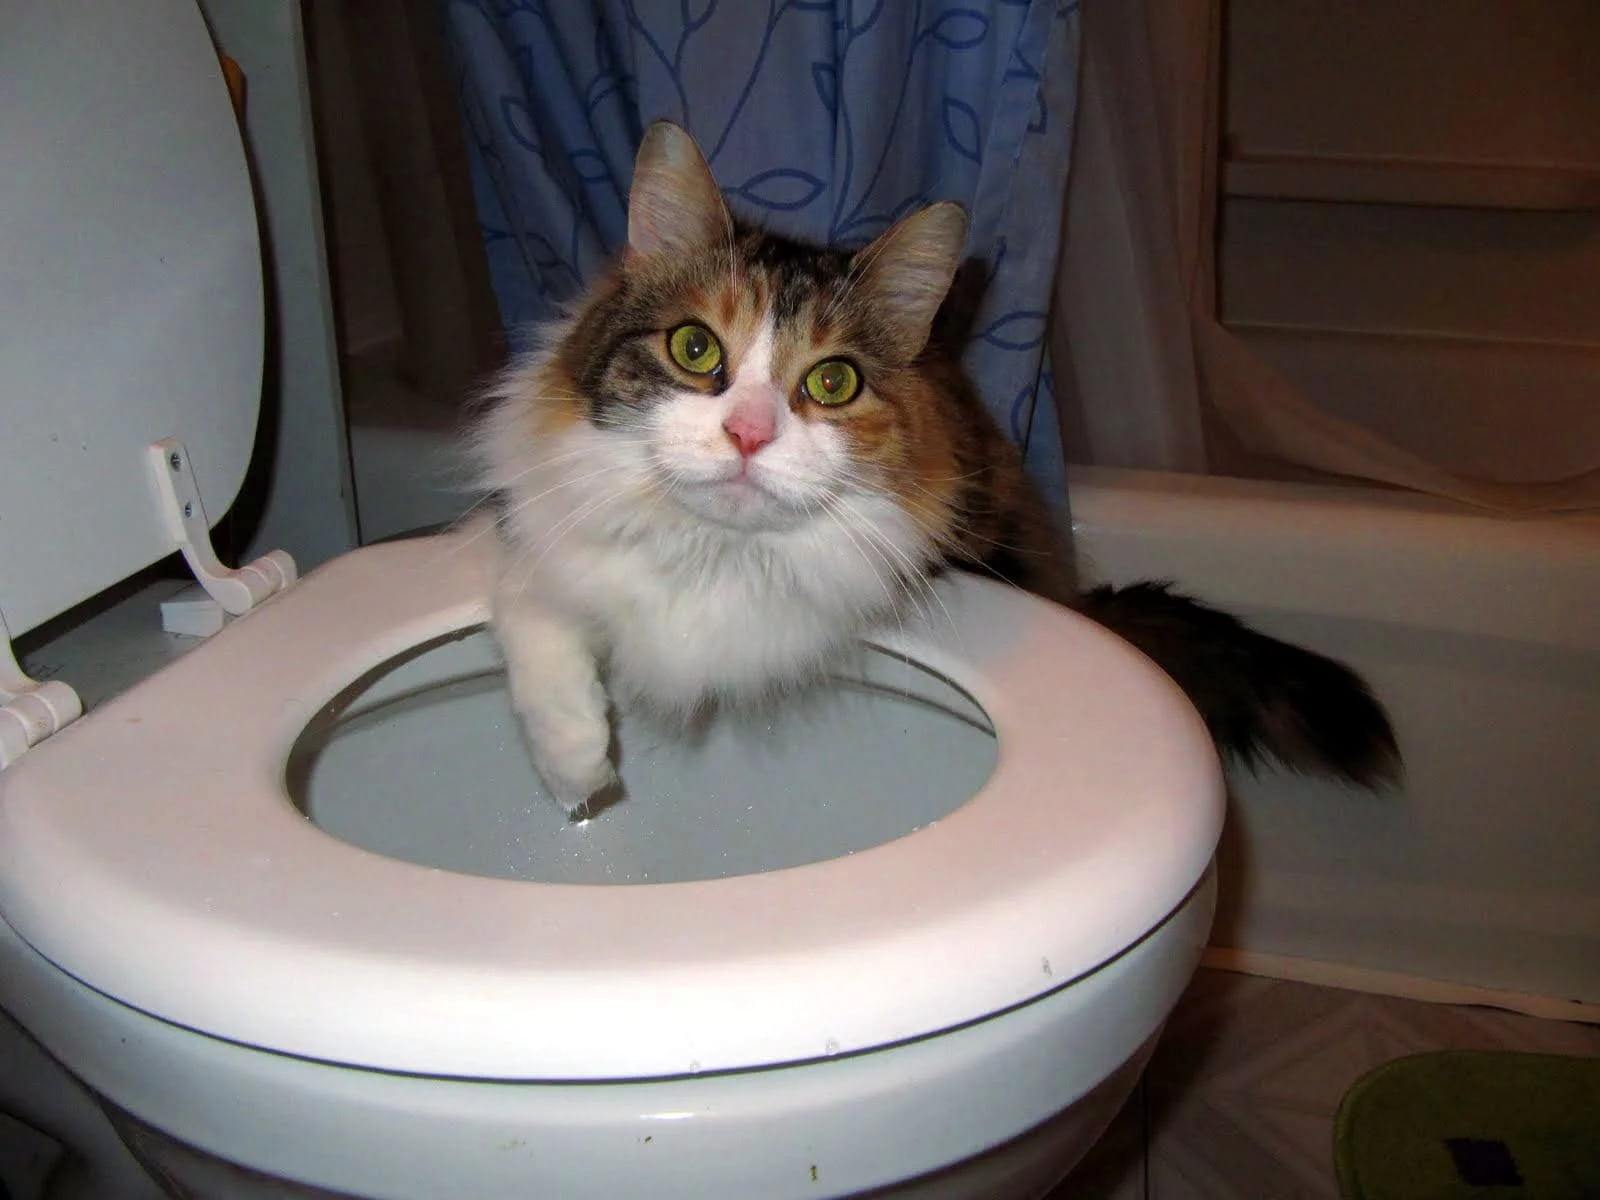 Cat in toilet